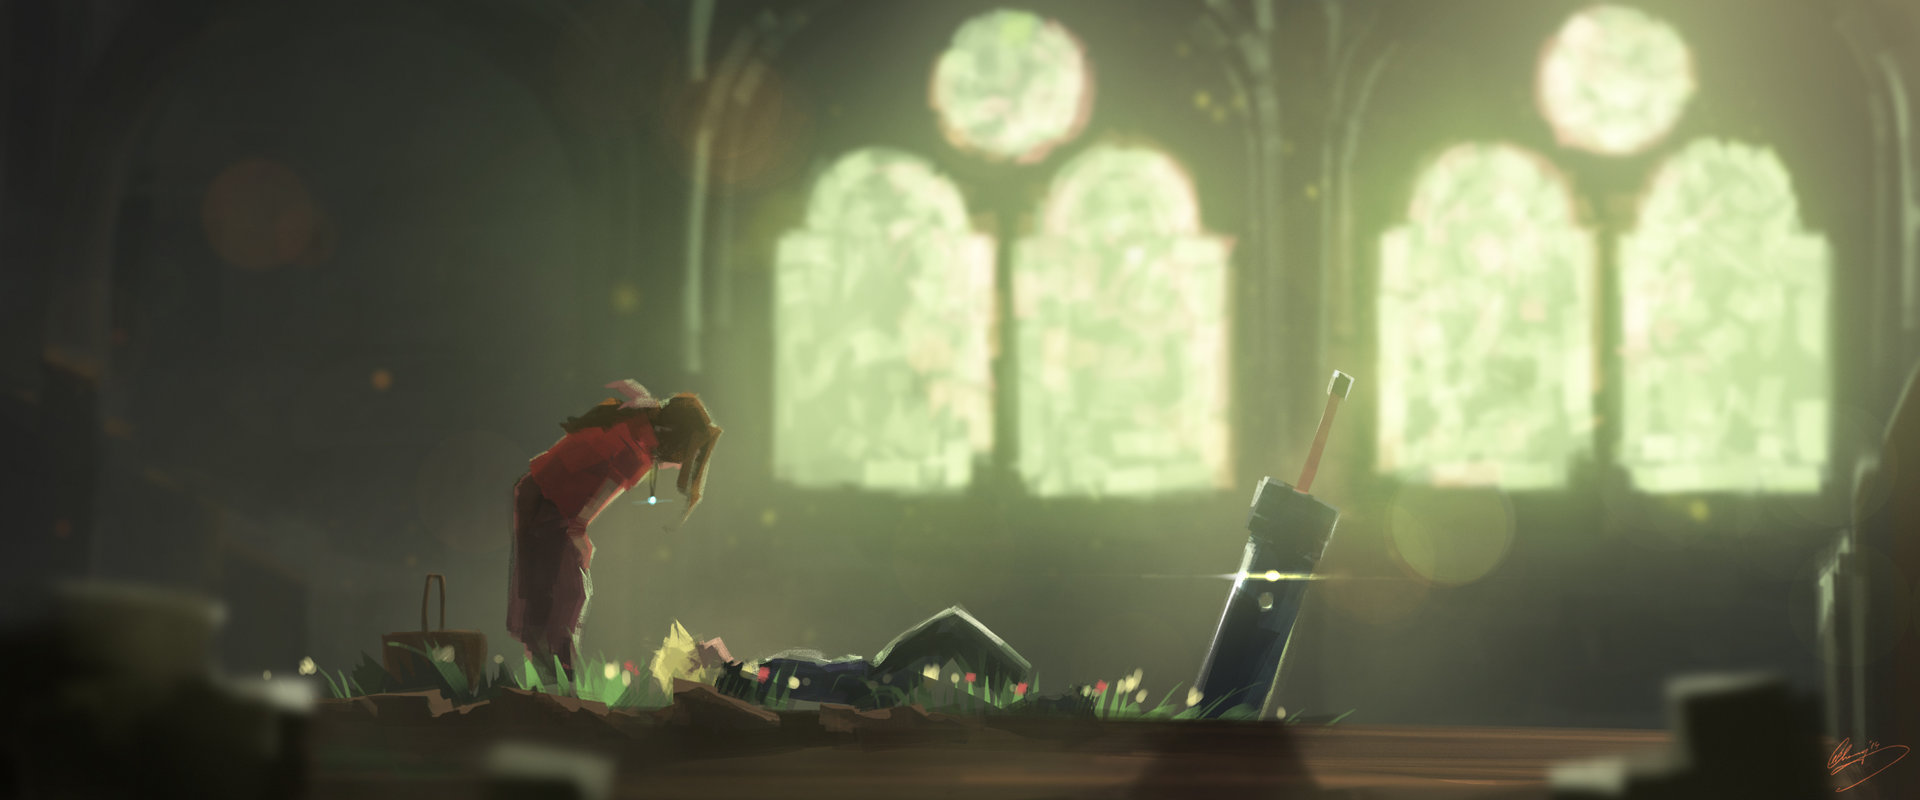 Artist Creates 130 Final Fantasy VII Art Pieces in Six Months | The ...